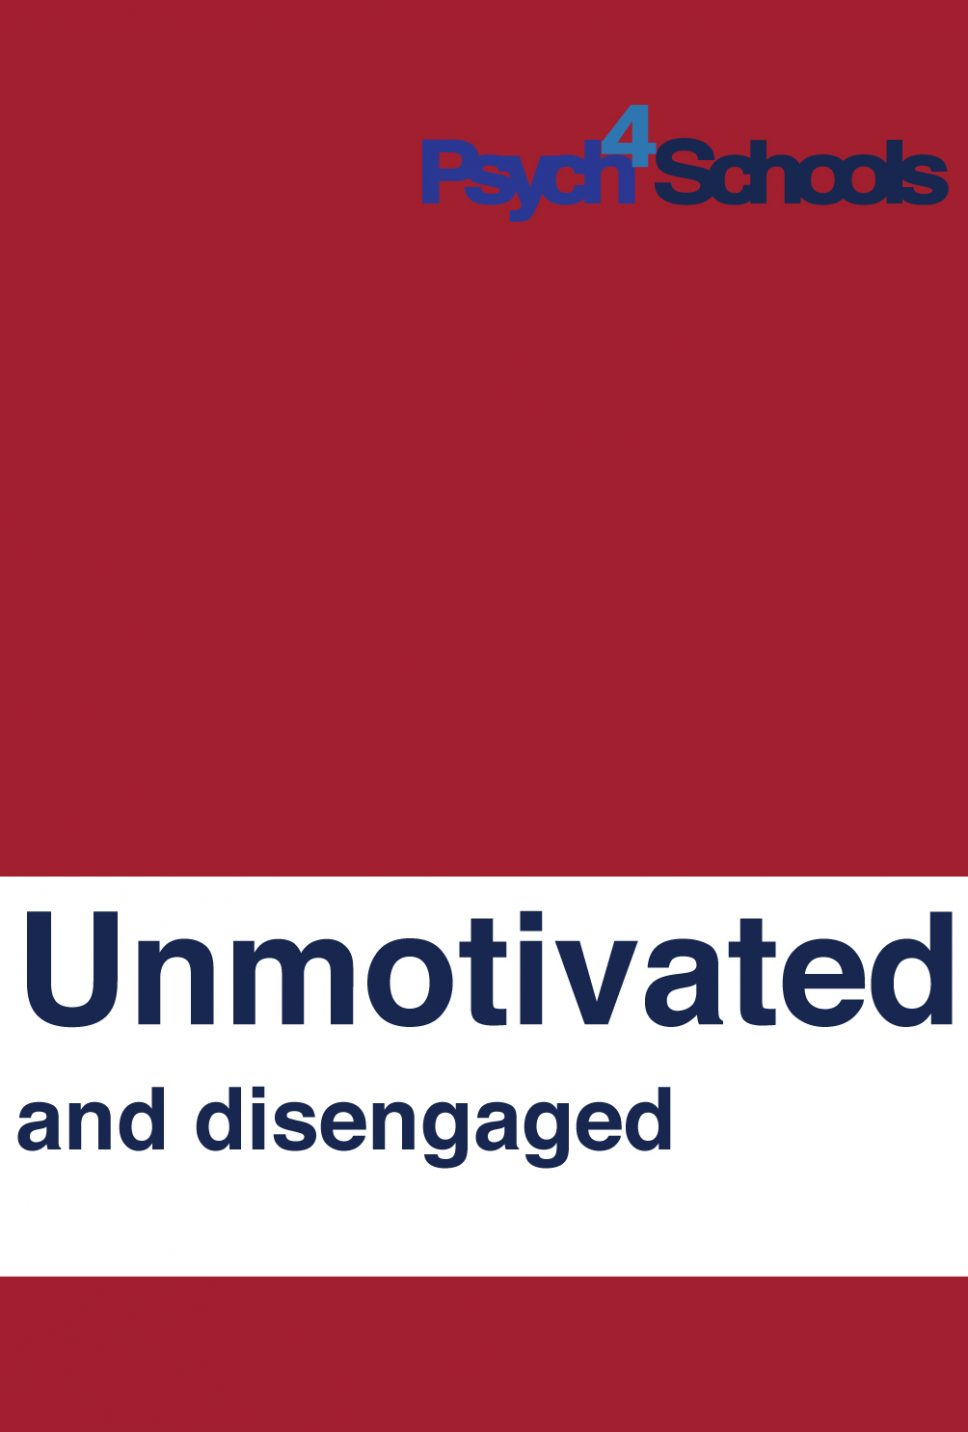 unmotivated definition